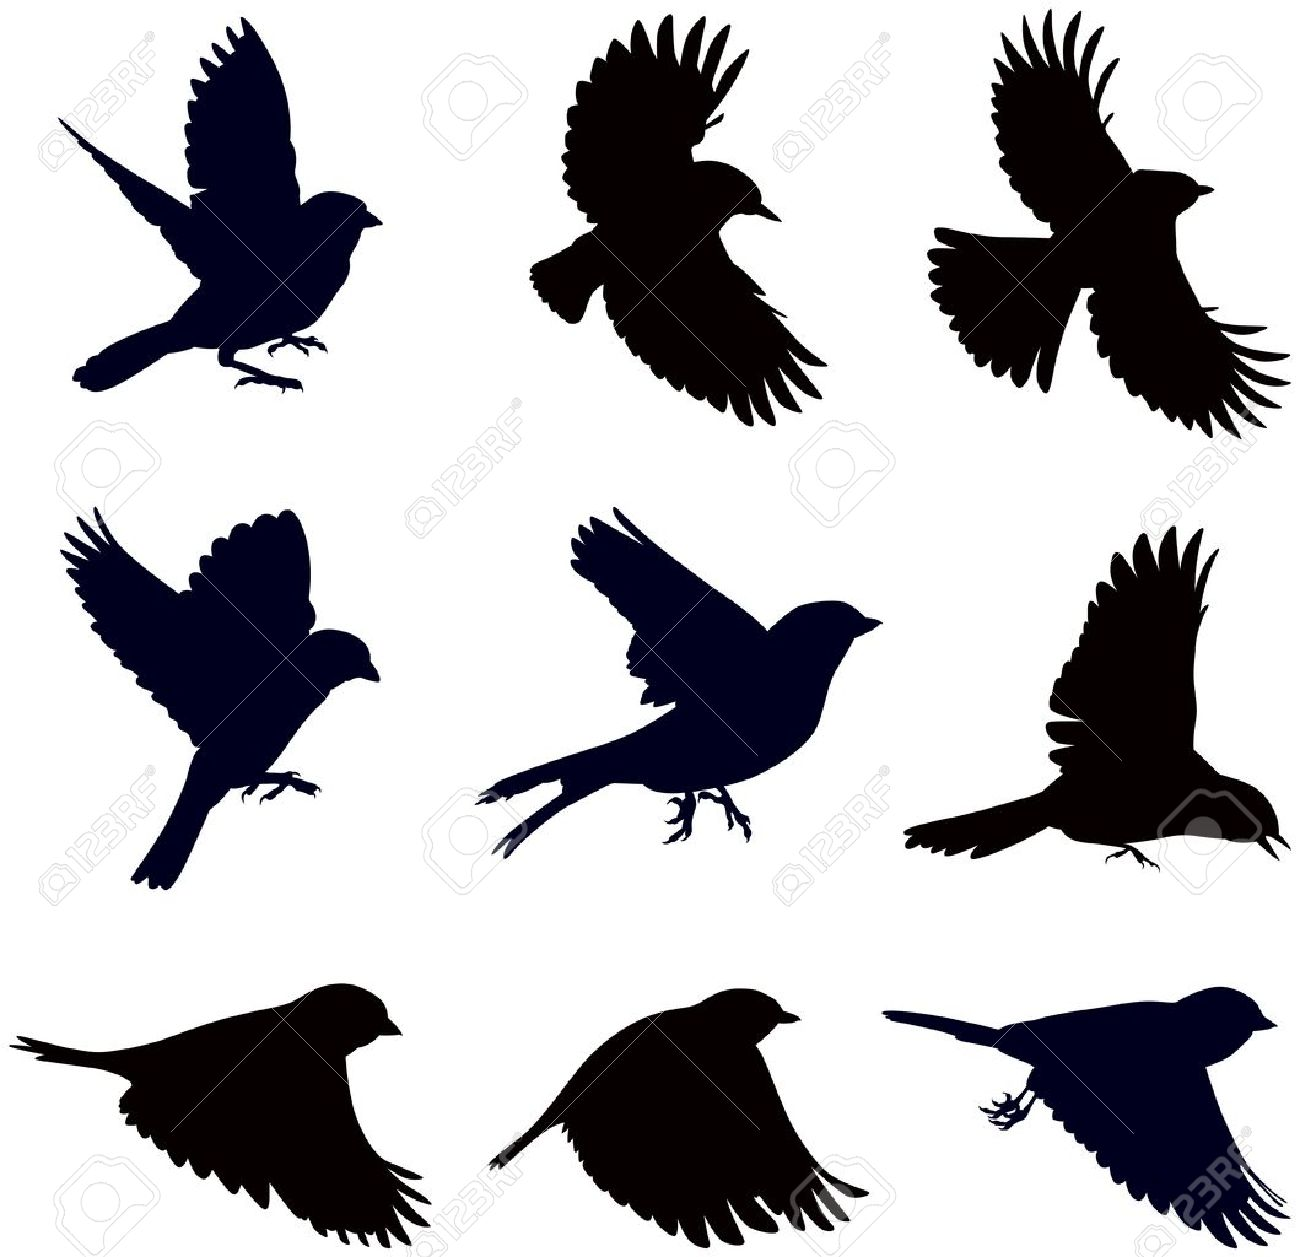 Sparrow Silhouette Flying silhouettes of birds  sparrows